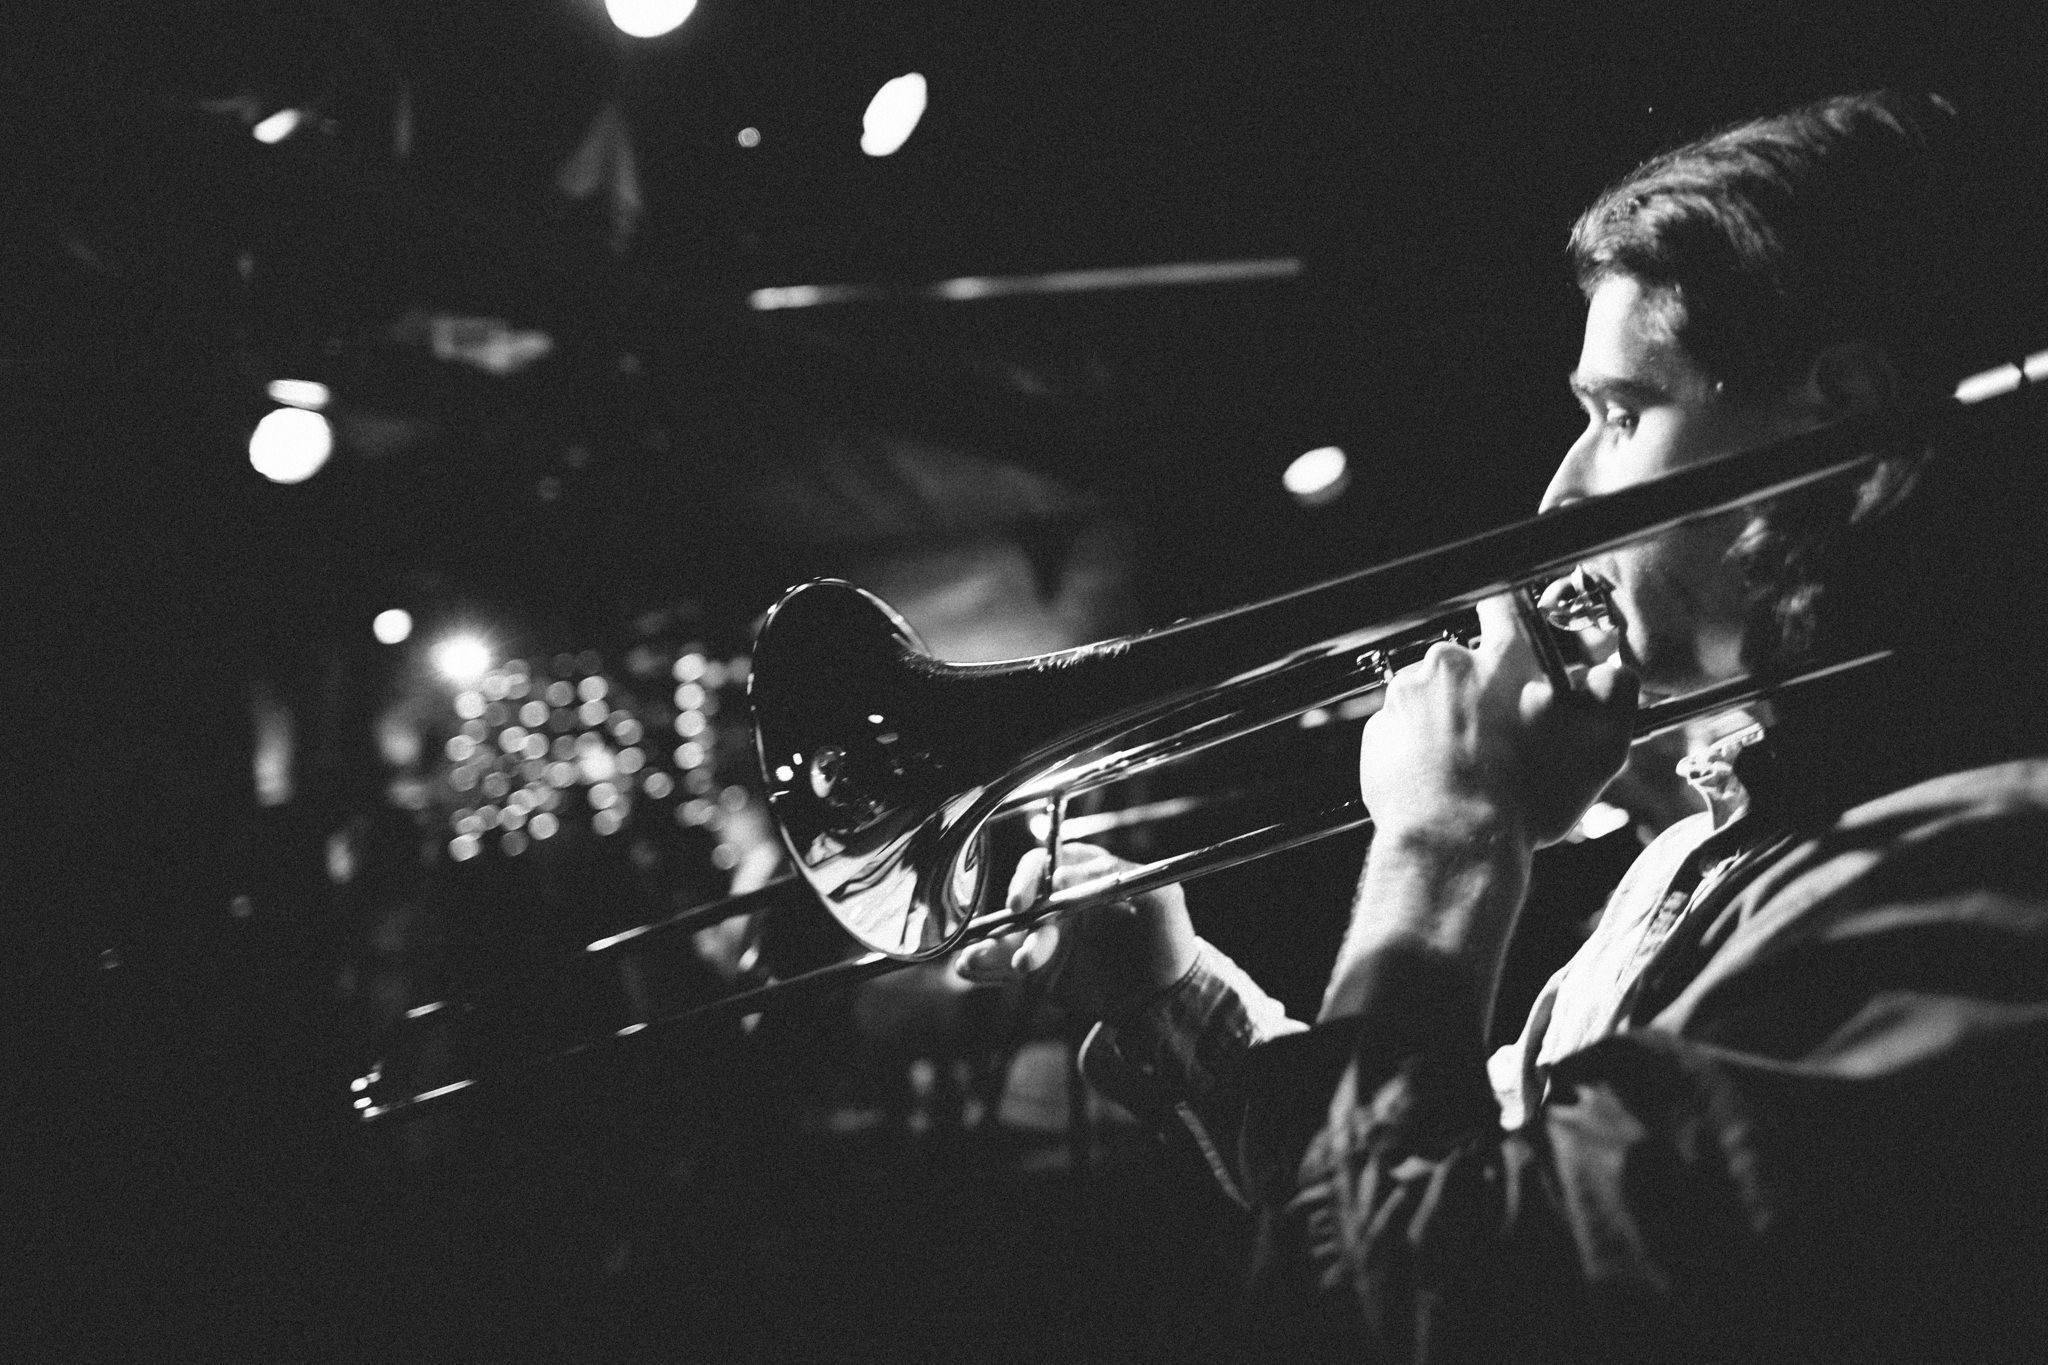 photographers captures candid shots of wedding in melbourne - music band at wedding playing trumpet